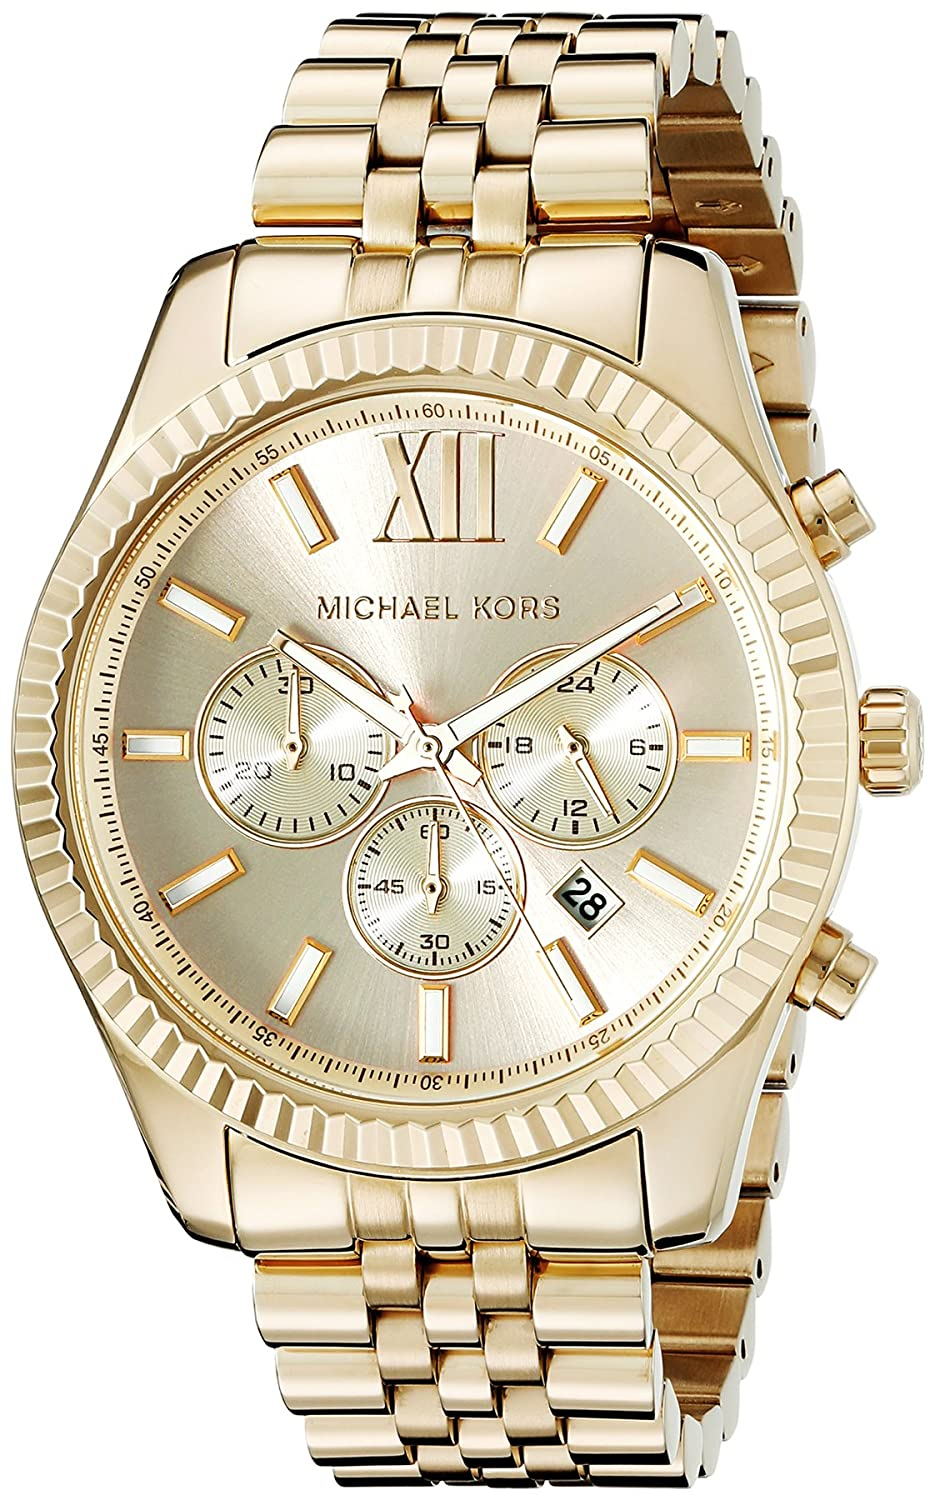 875f5b6fa299de Amazon.com: Michael Kors Lexington Gold-Tone Stainless Steel Watch MK8281: Michael  Kors: Watches